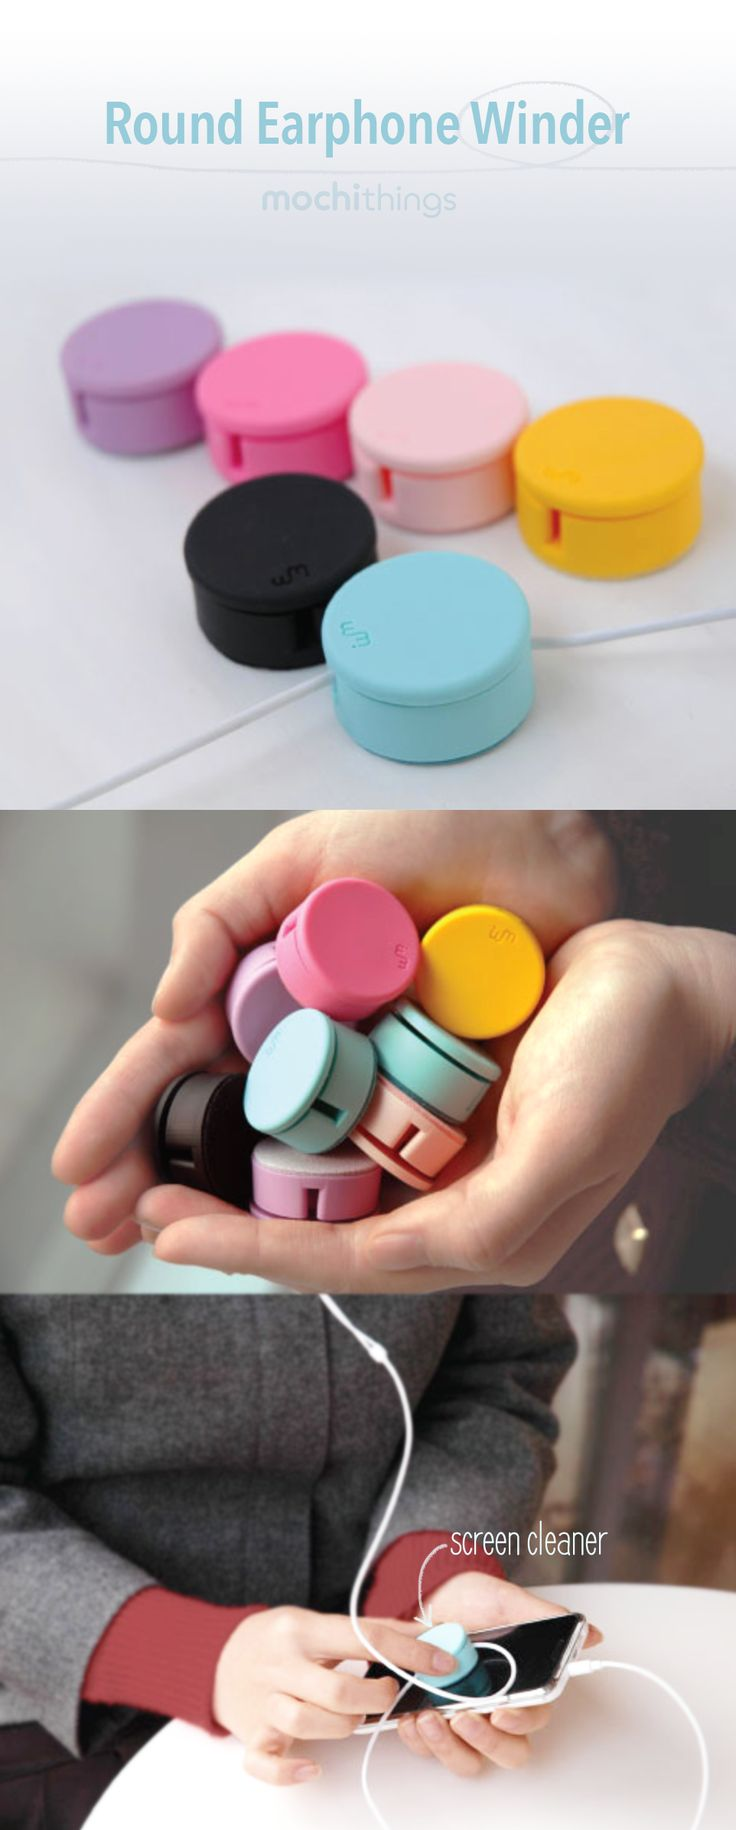 Nothing is worse than tangled earphones! The Round Earphone Winder is an organizer that keeps your cord neatly rolled up improving the longevity, so you don't have to keep replacing broken earphones every few months!